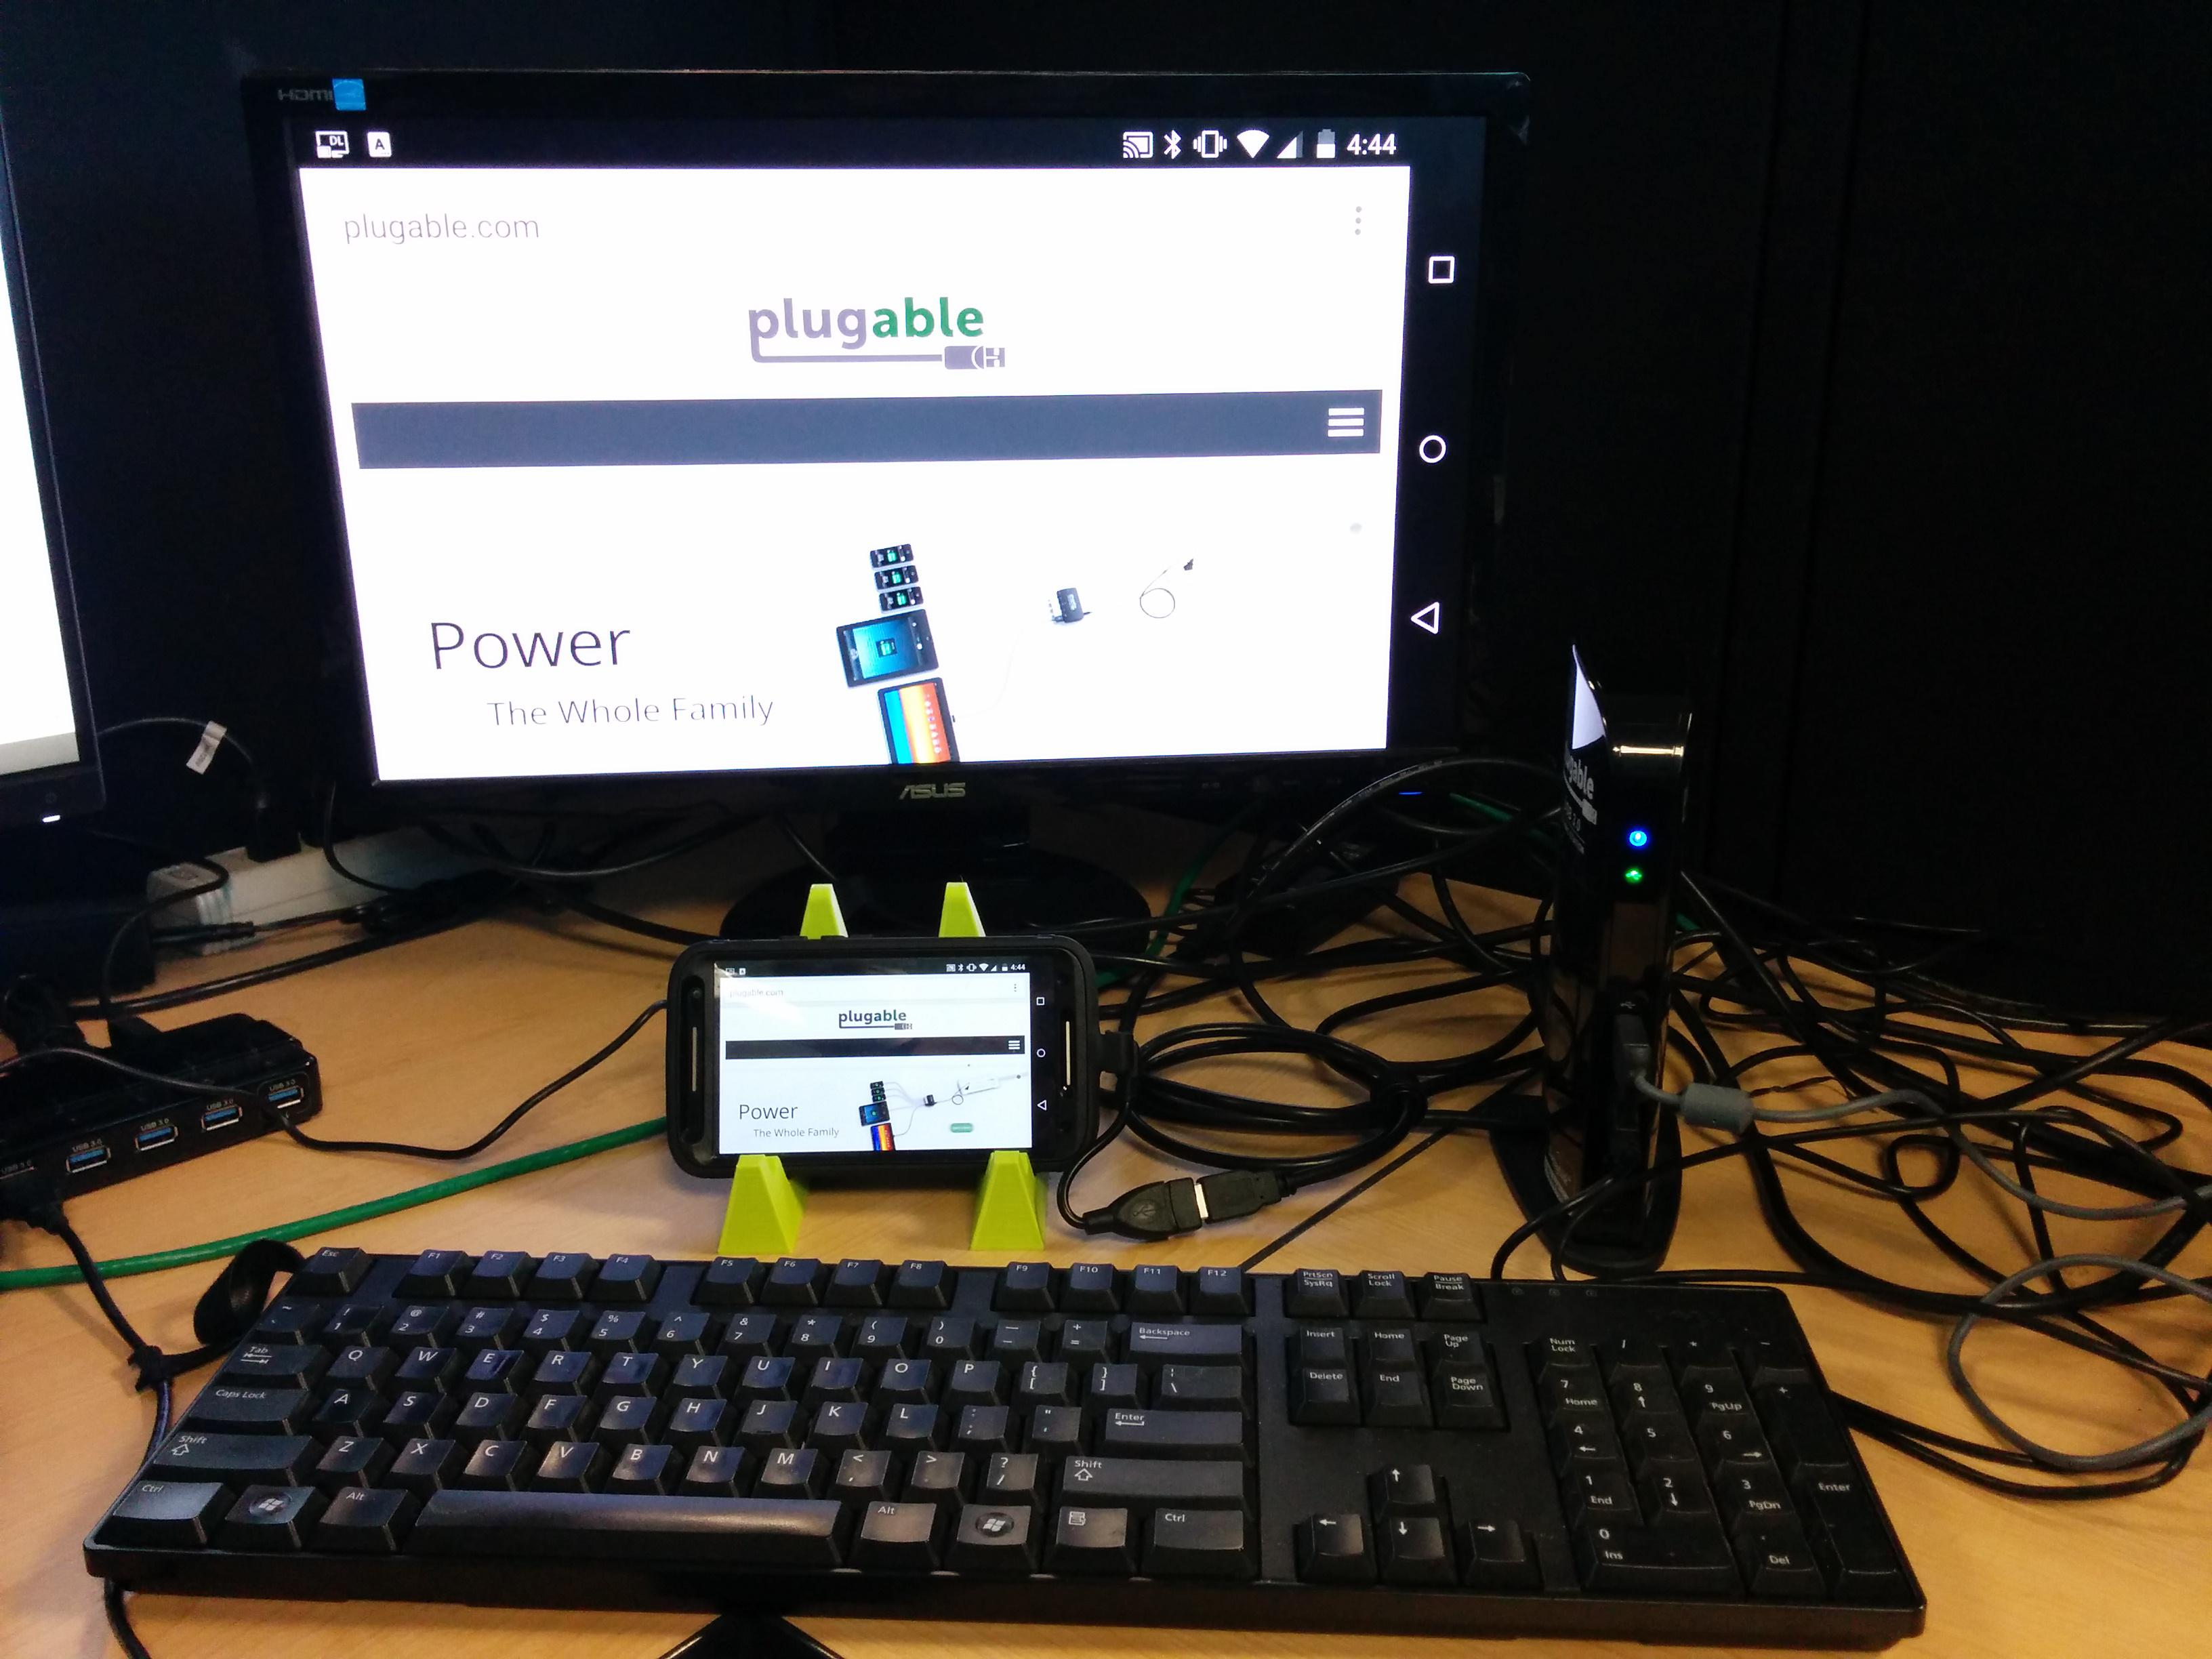 Connecting an Android phone to multiple peripherals using a Plugable UD-3000